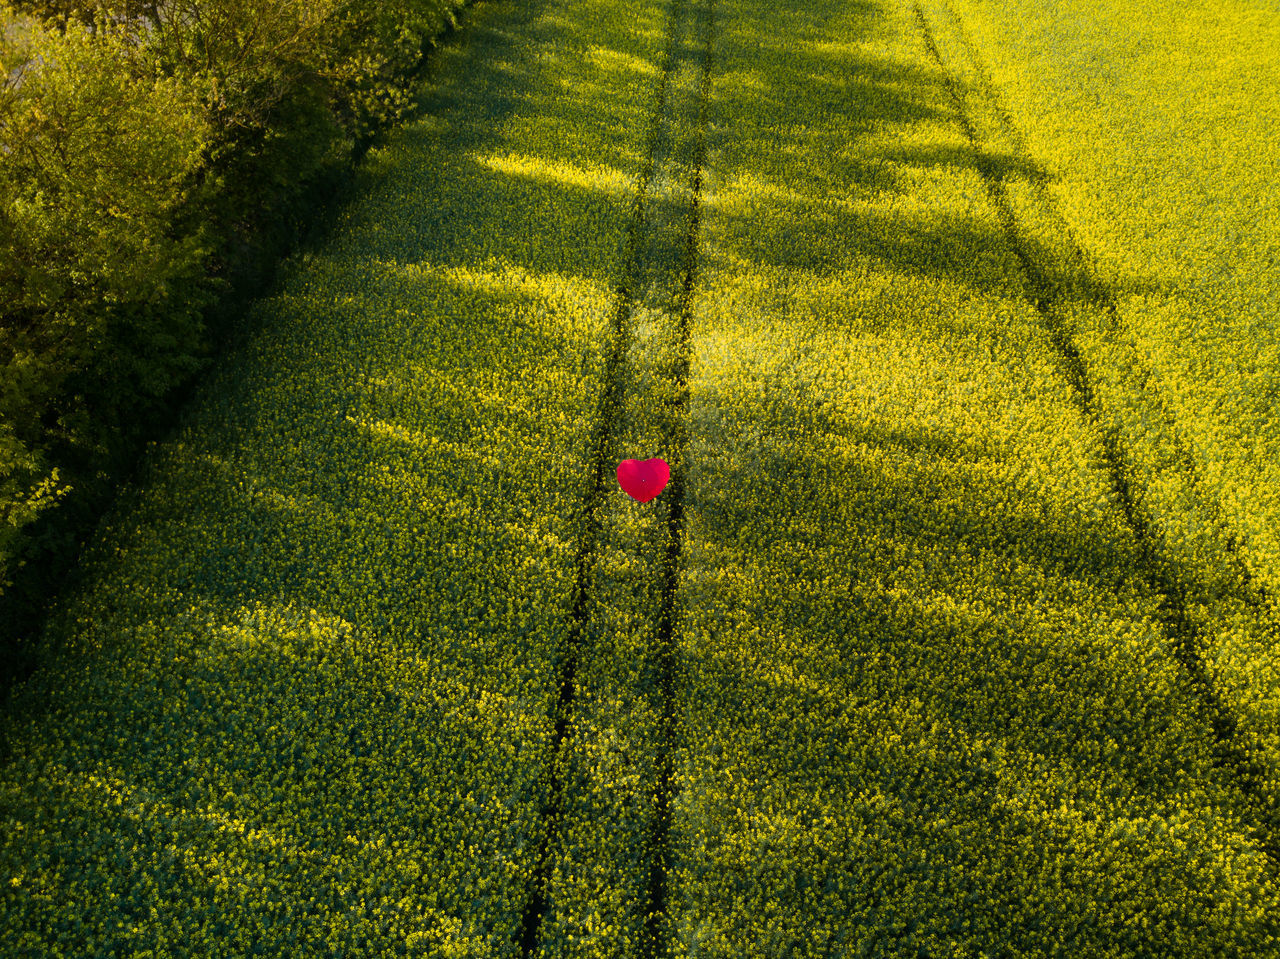 Beauty In Nature Day Grass Green Color Growth High Angle View Love Nature No People Outdoors Raps Rapsfeld Shadow Sunlight